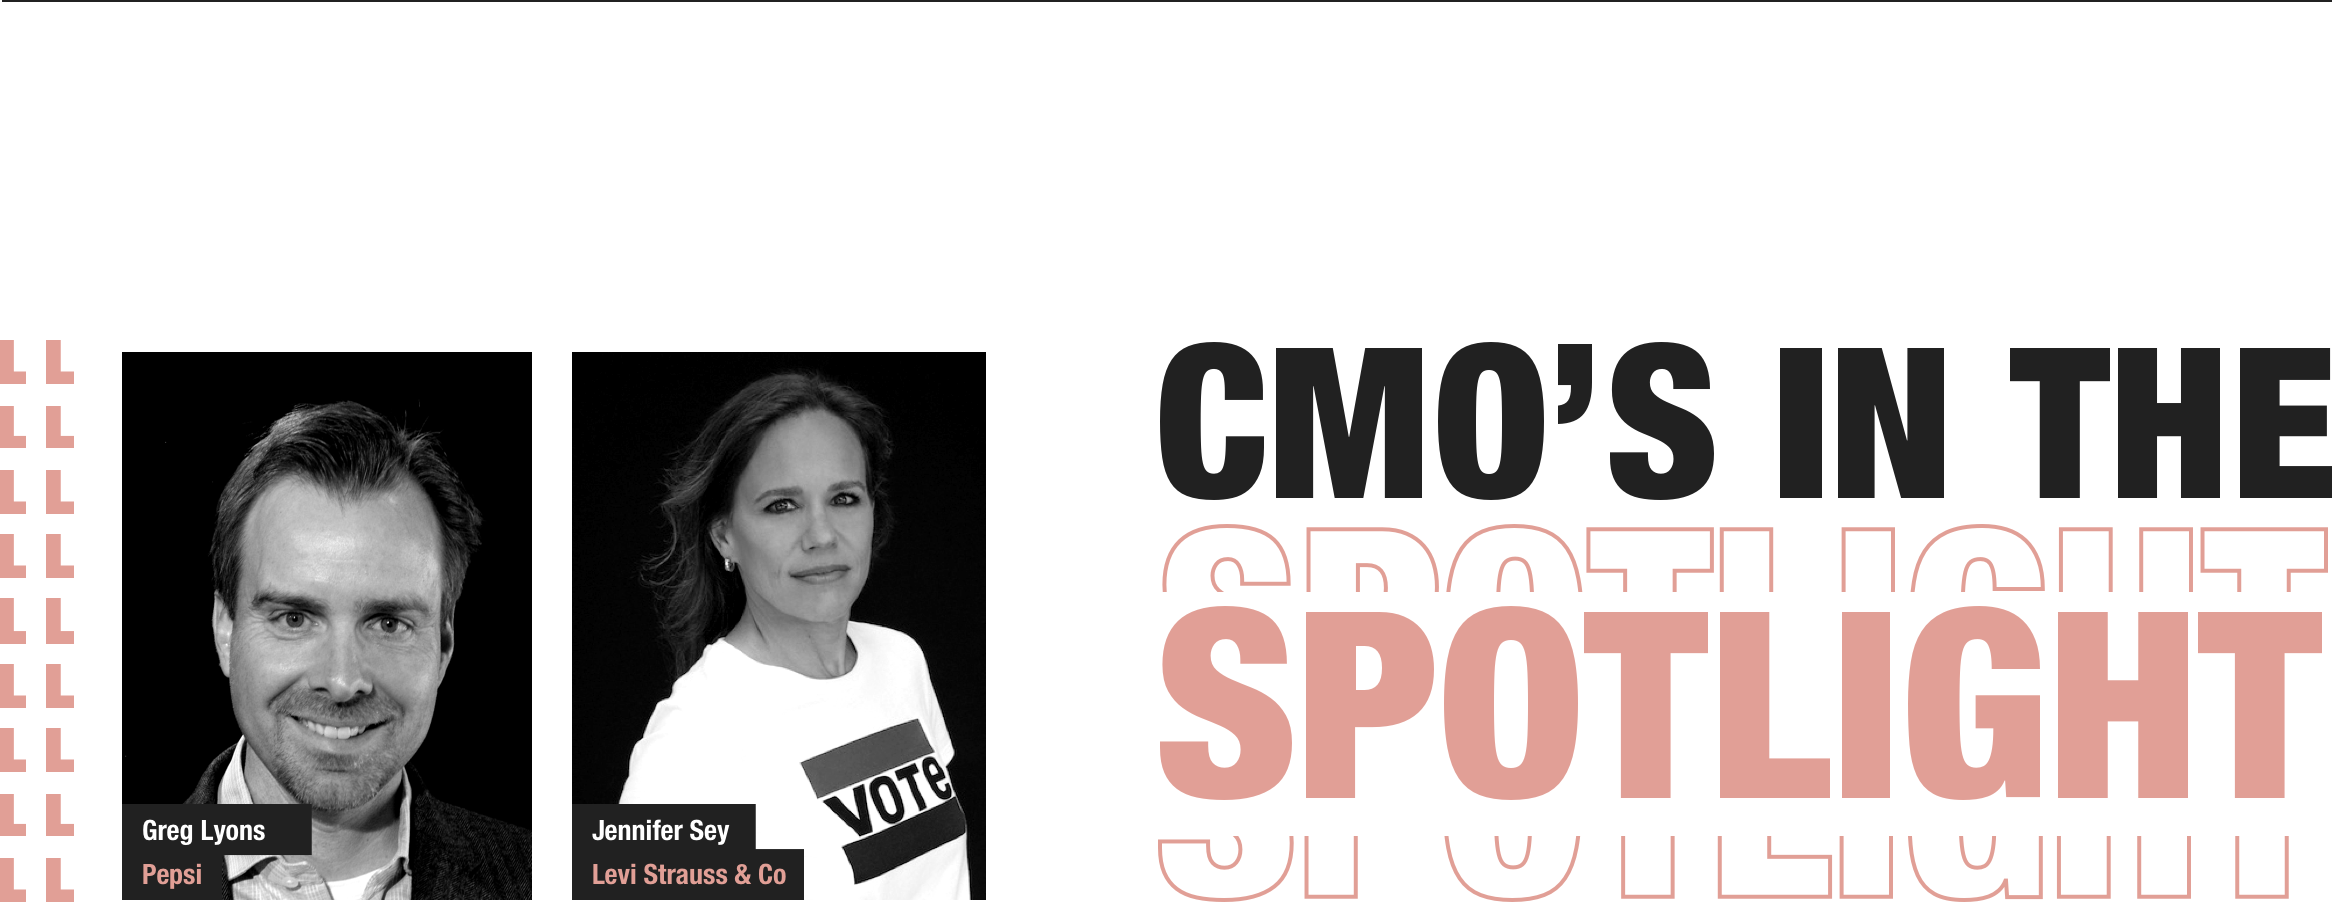 CMO's in the spotlight